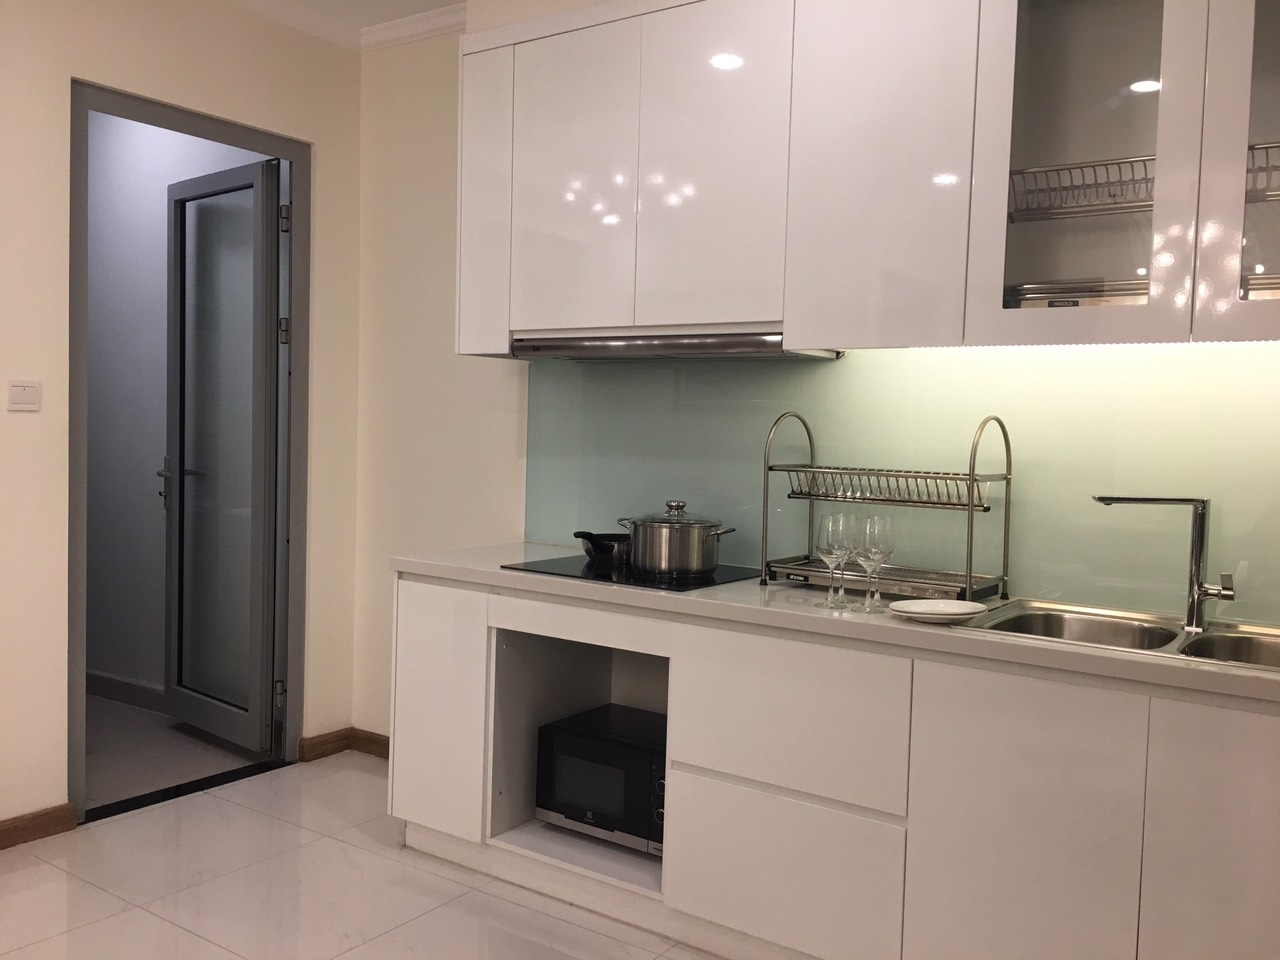 vinhomes central park apartment for rent in binh thanh district hcmc BT105L1497(3)